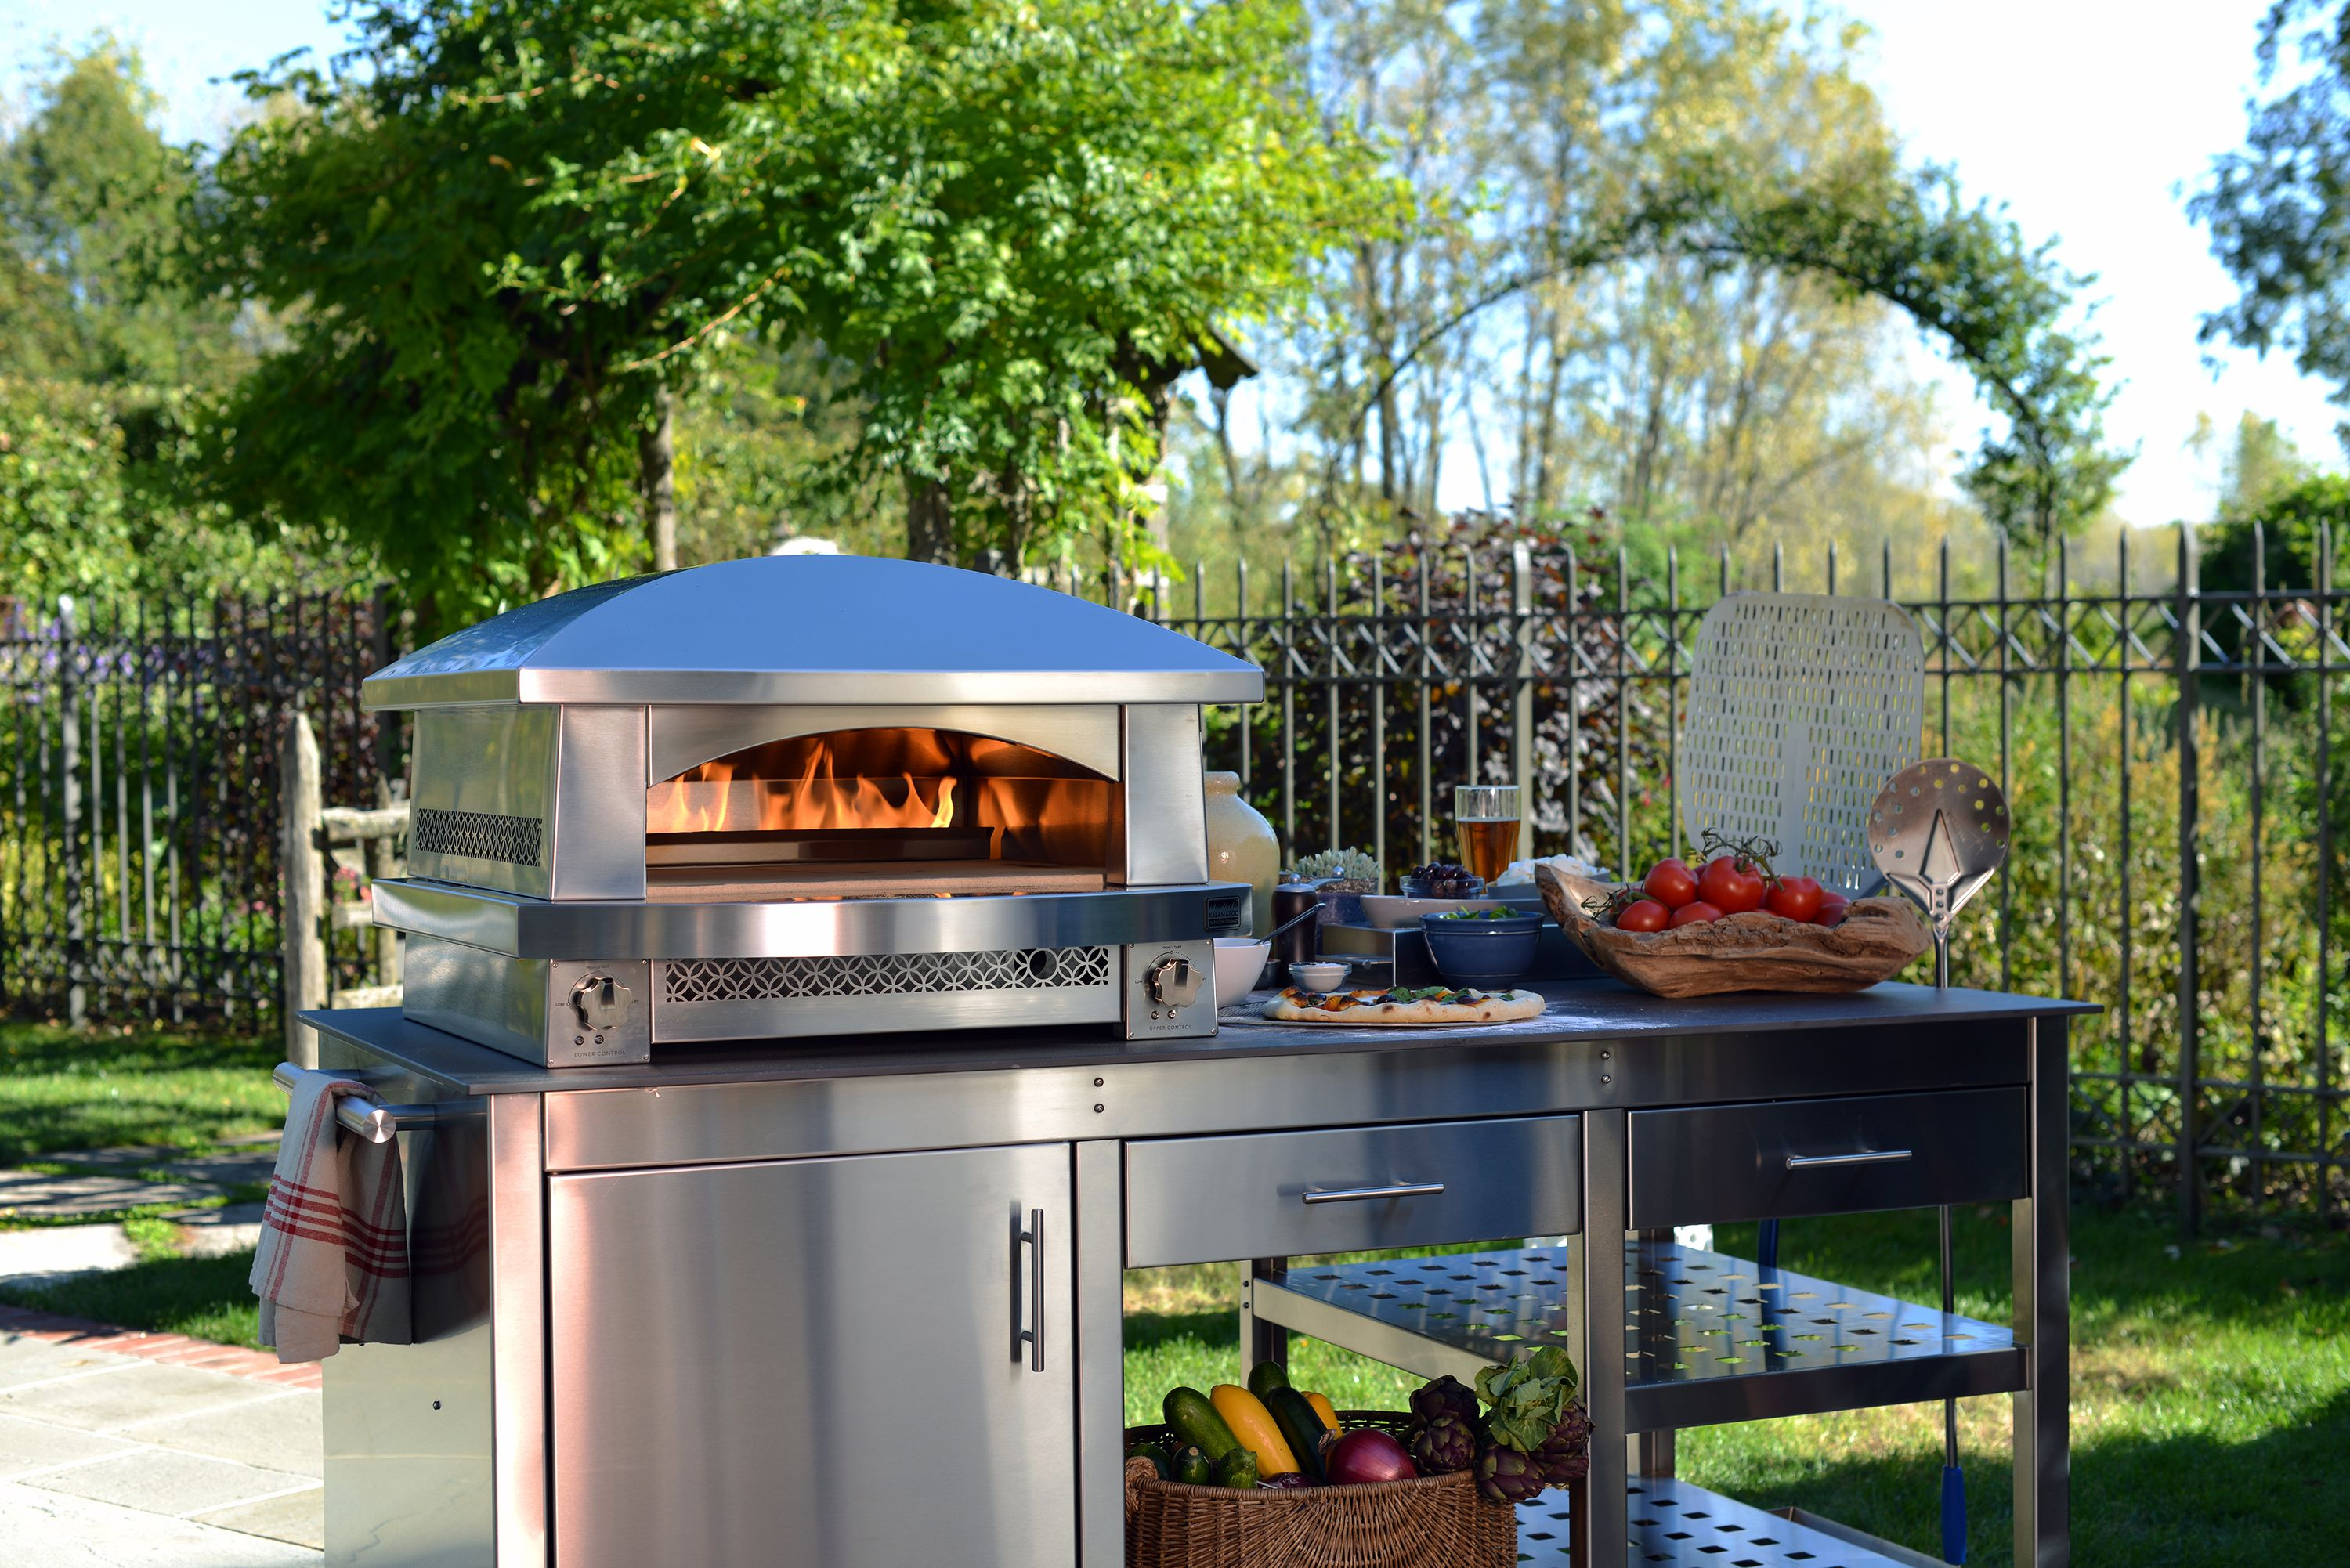 Kalamazoo Outdoor Gourmet Fire Pizza Oven And Station